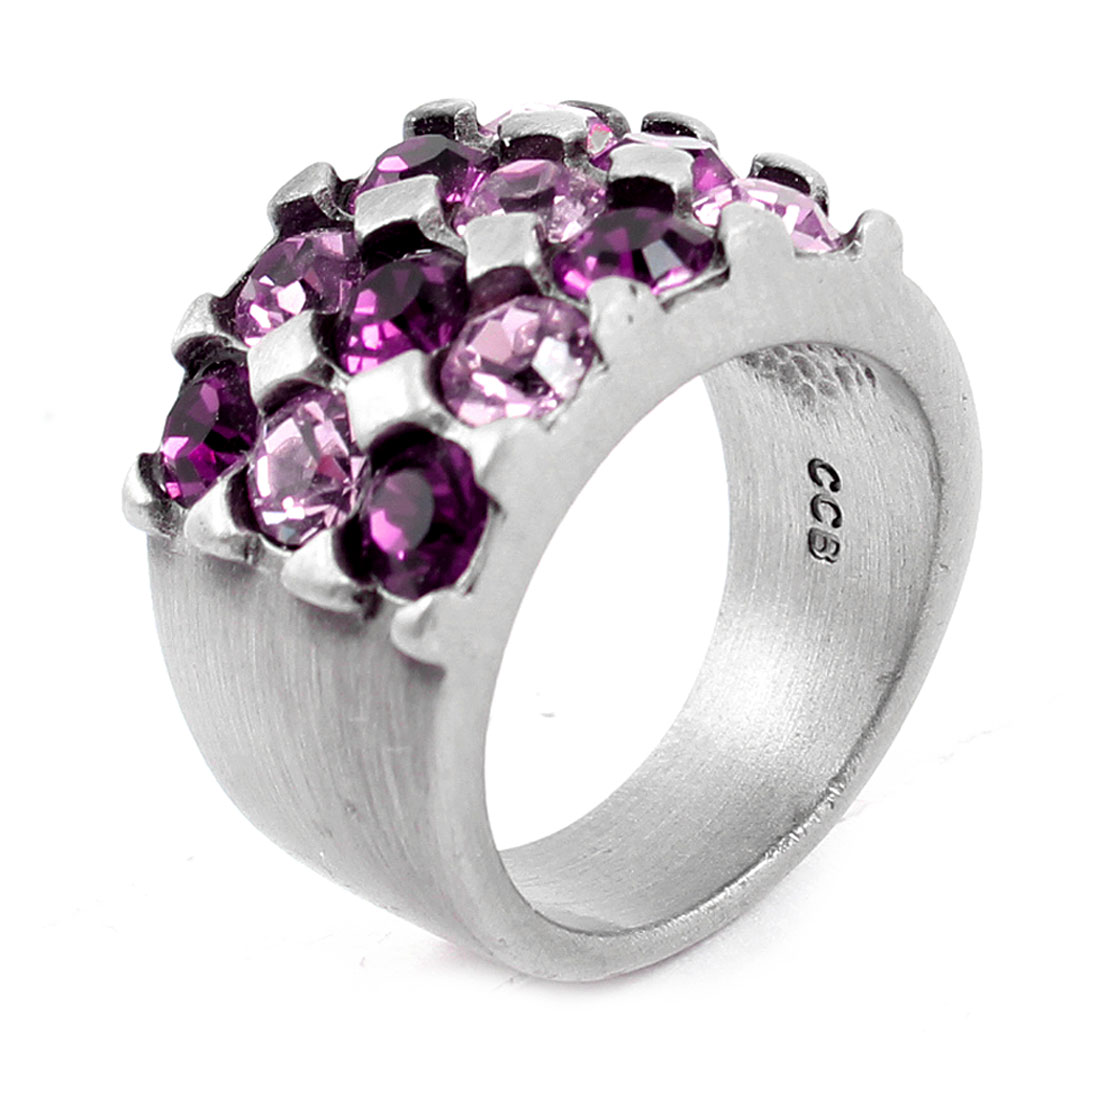 Ladies Purple Light Pink Rhinestone Decor Metal Finger Ring US 5 3/4